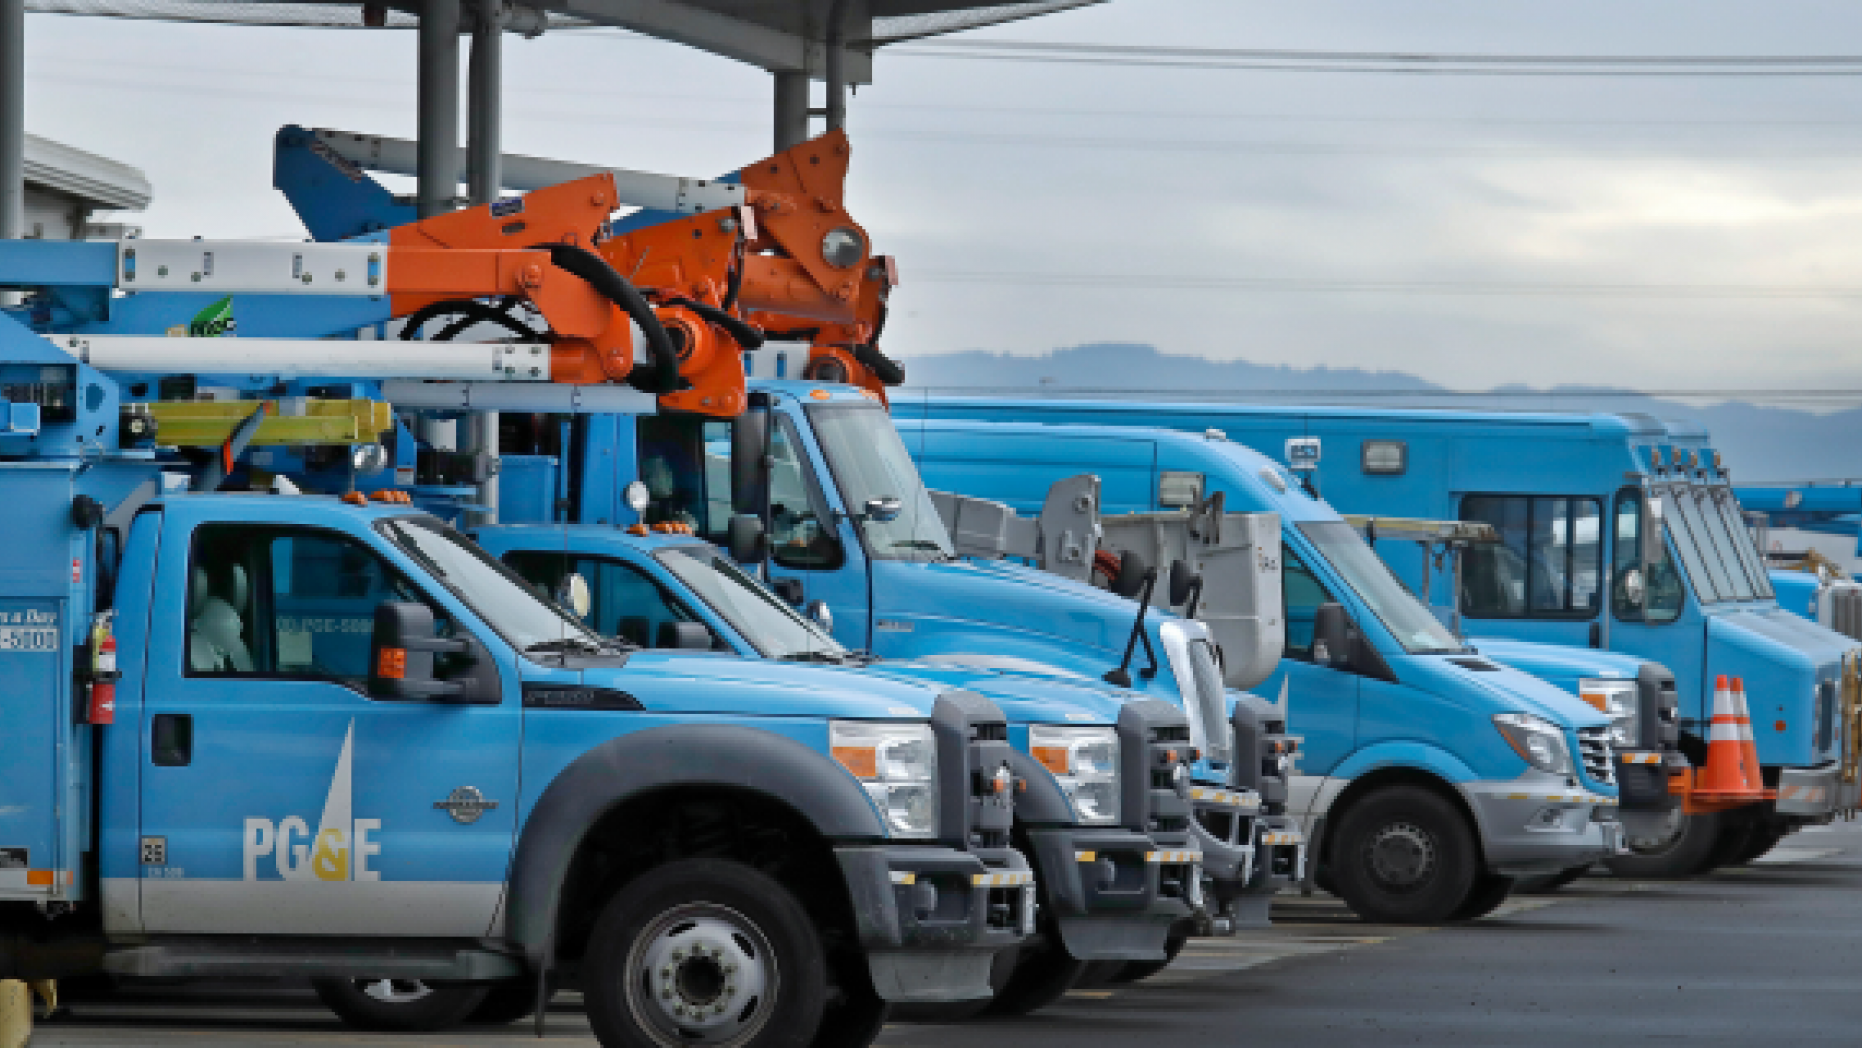 FILE - In this Jan. 14, 2019, file photo, Pacific Gas & Electric vehicles are parked at the PG&E Oakland Service Center in Oakland, Calif. The year